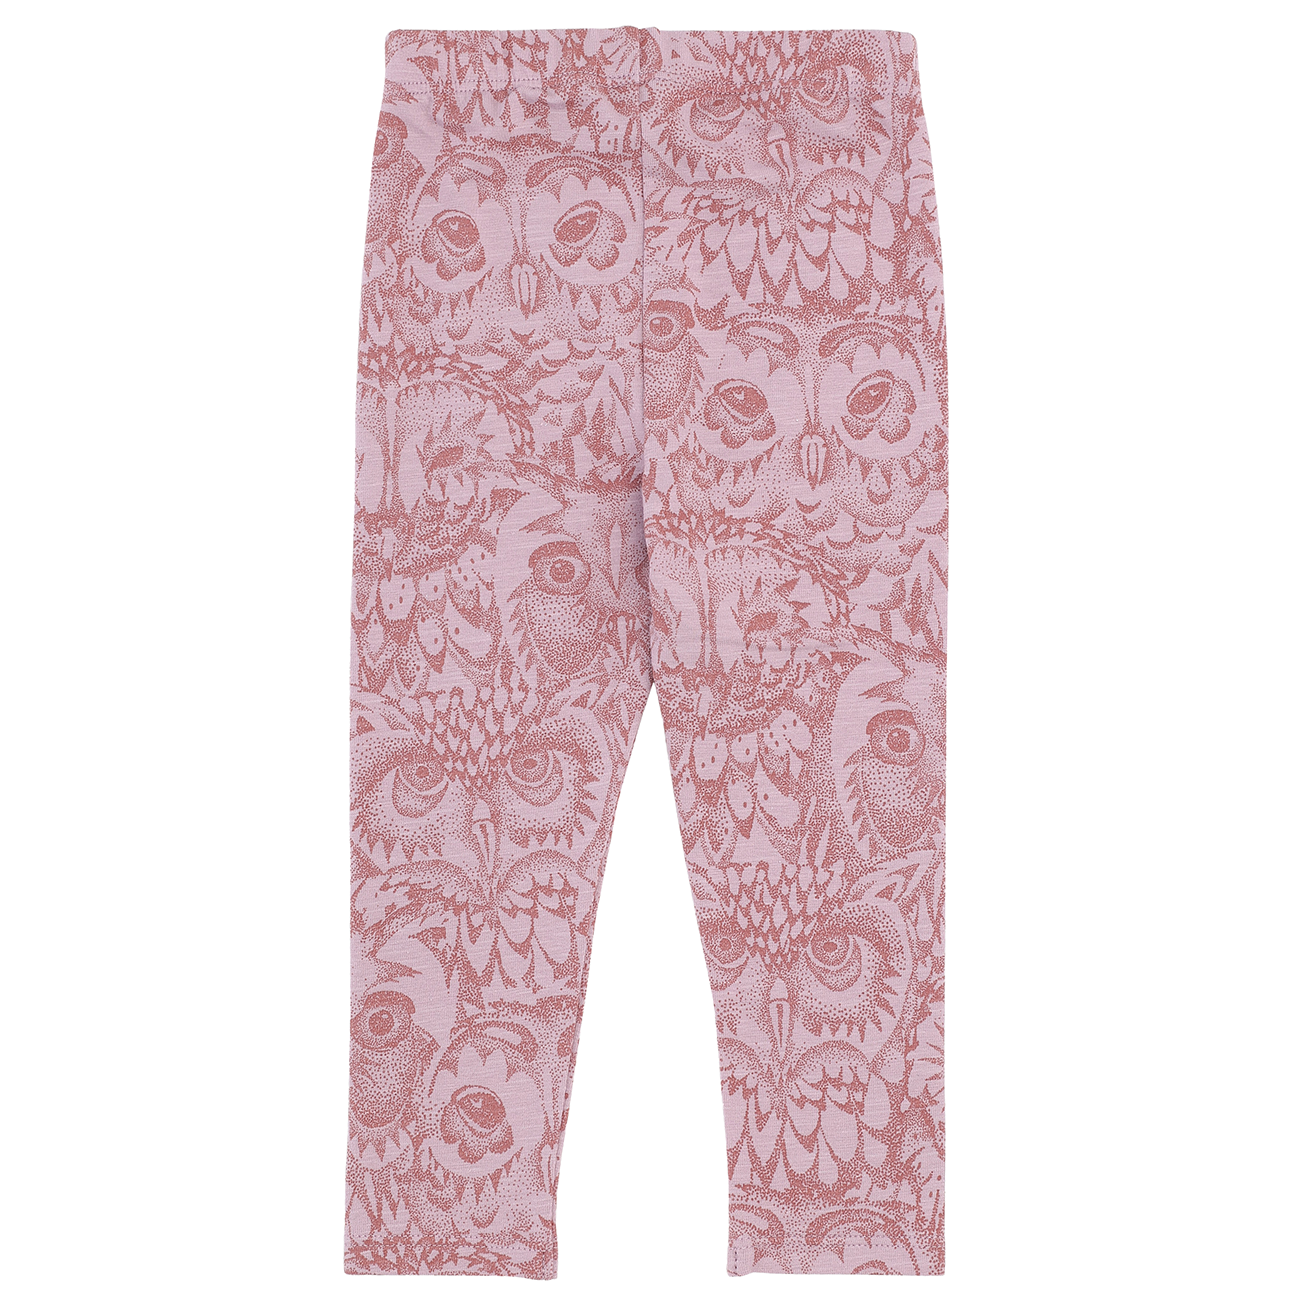 523-581-893-Soft-Gallery-AOP-Owl-Lavender-Mauve-Shadows-Paula-Baby-Leggings-1